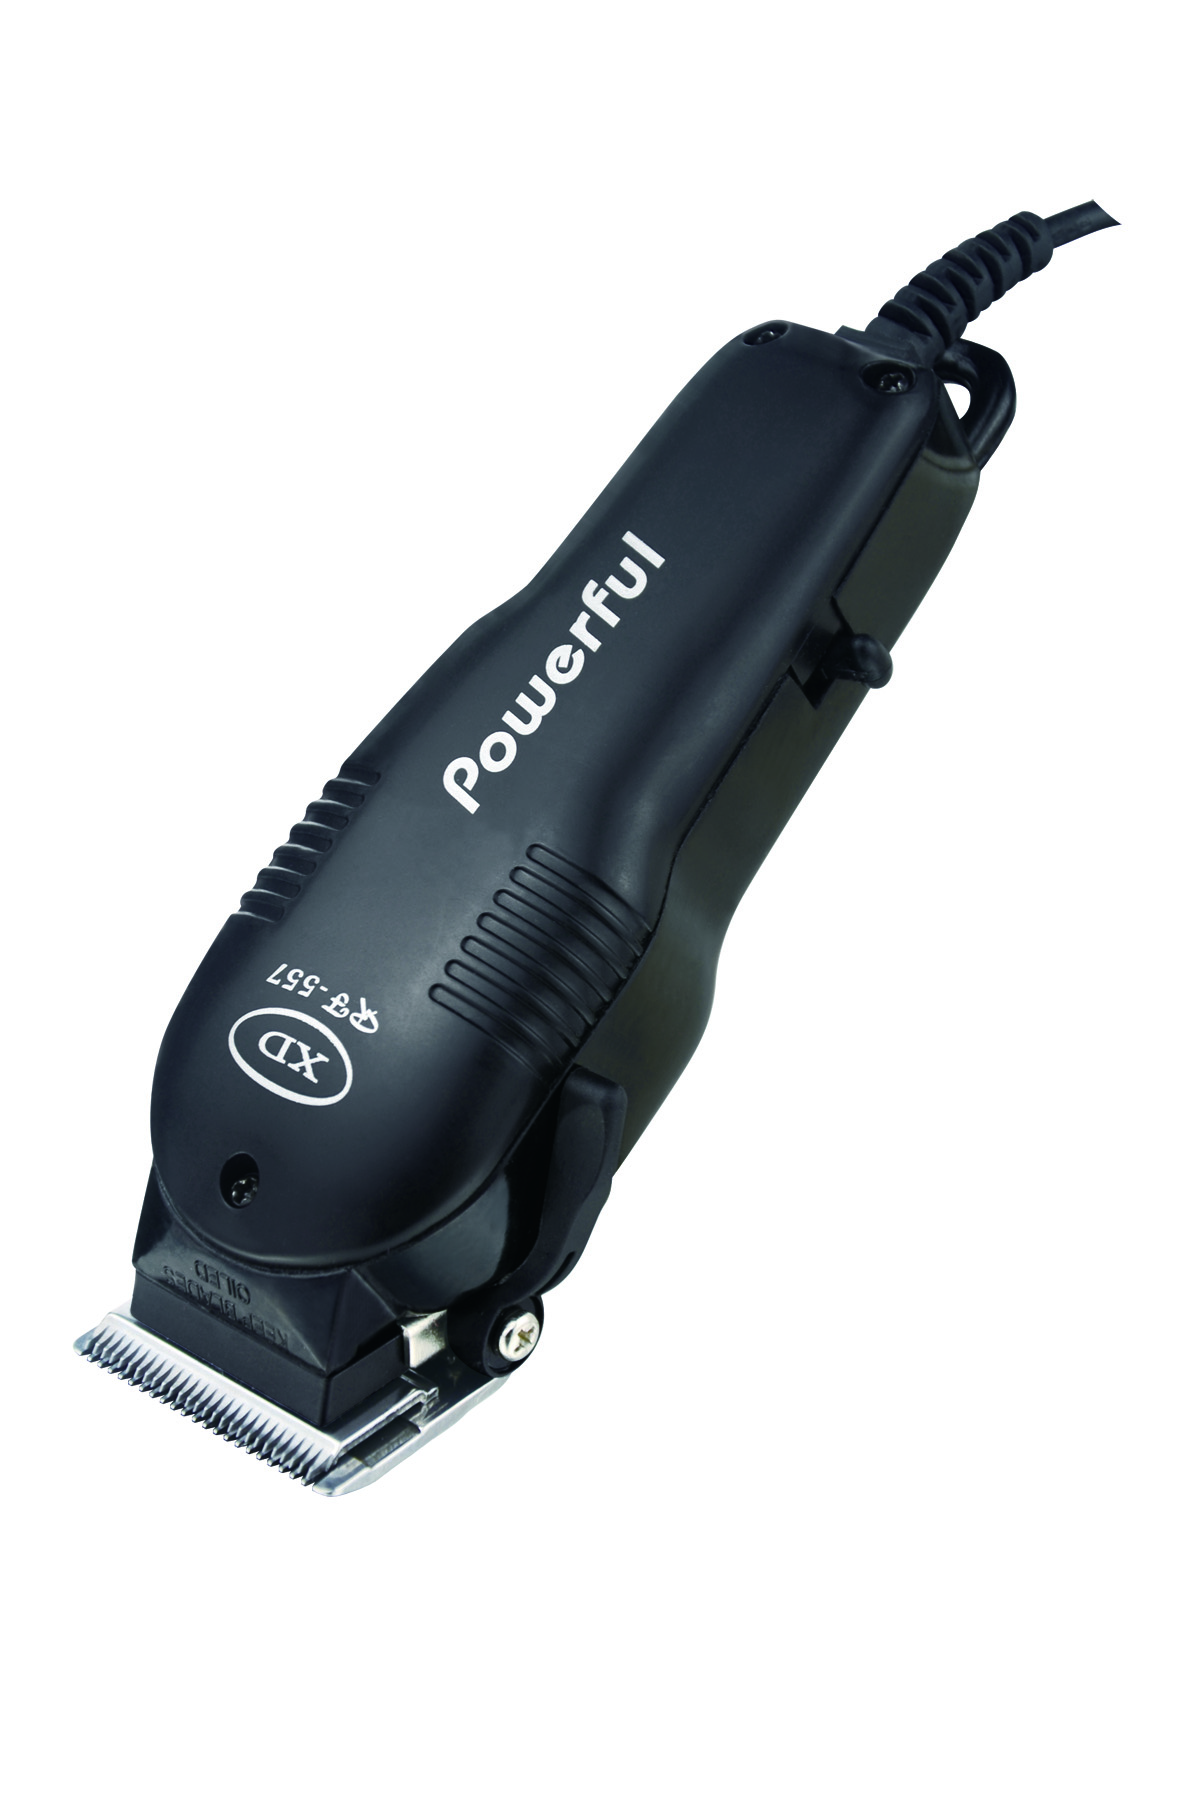 MGX2001 Hair Clipper